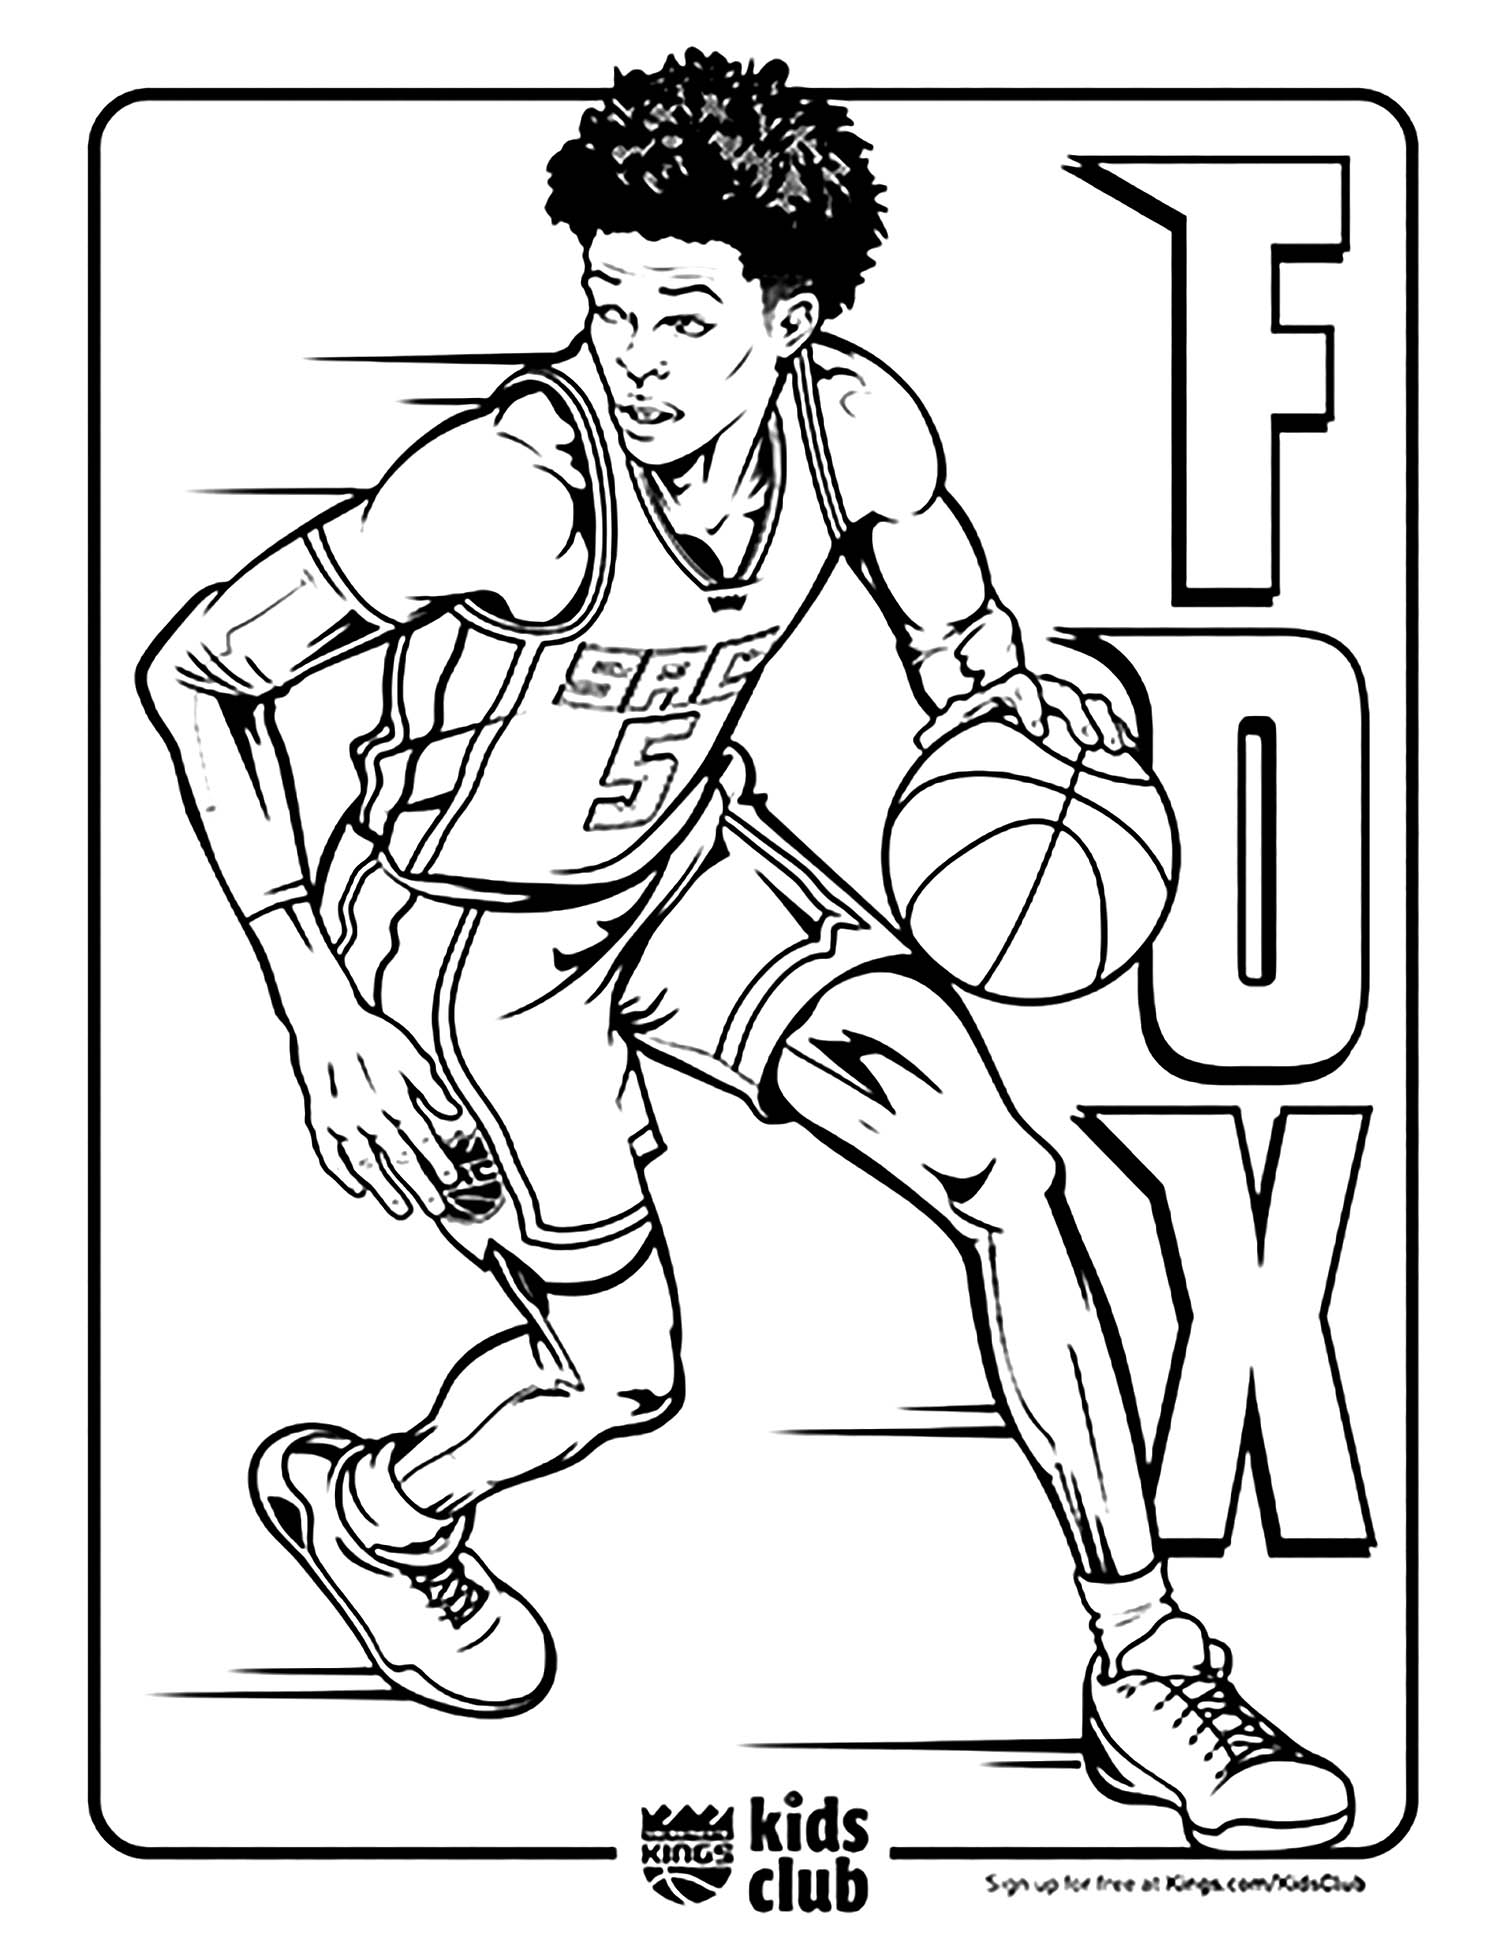 Free Basketball coloring page to print and color, for kids